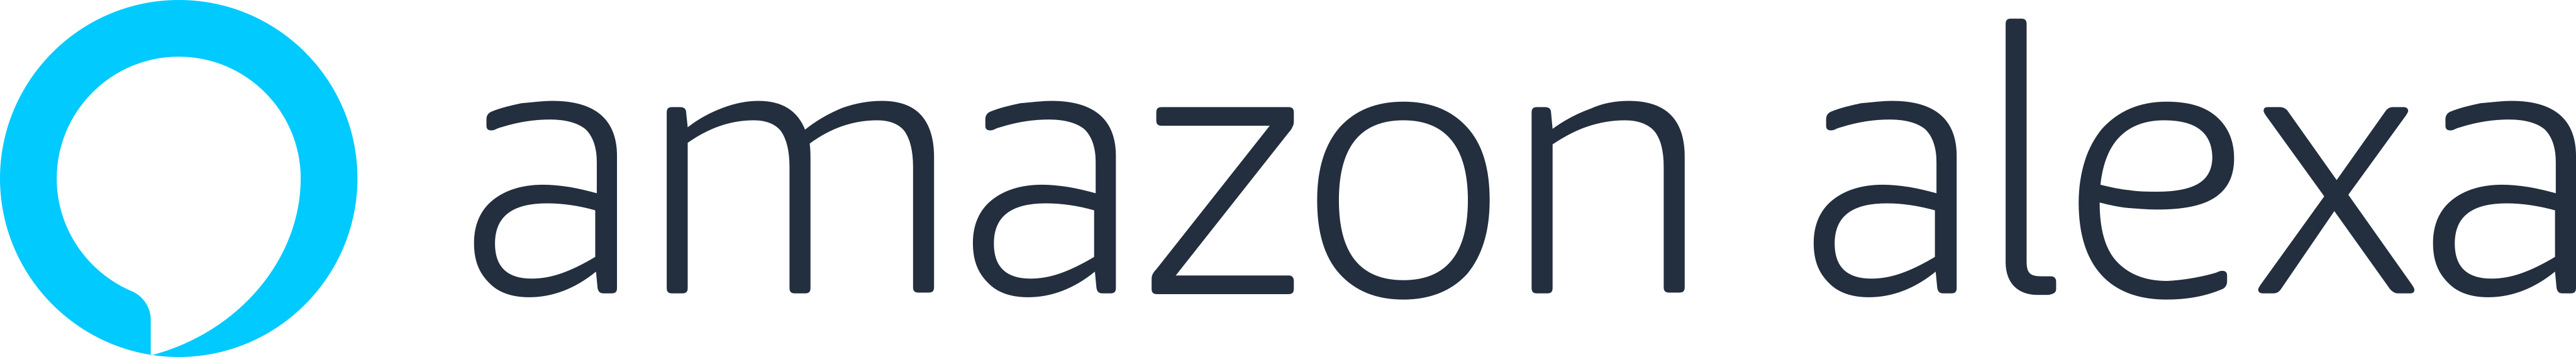 amazon alexa logo - Amazon Alexa Logo